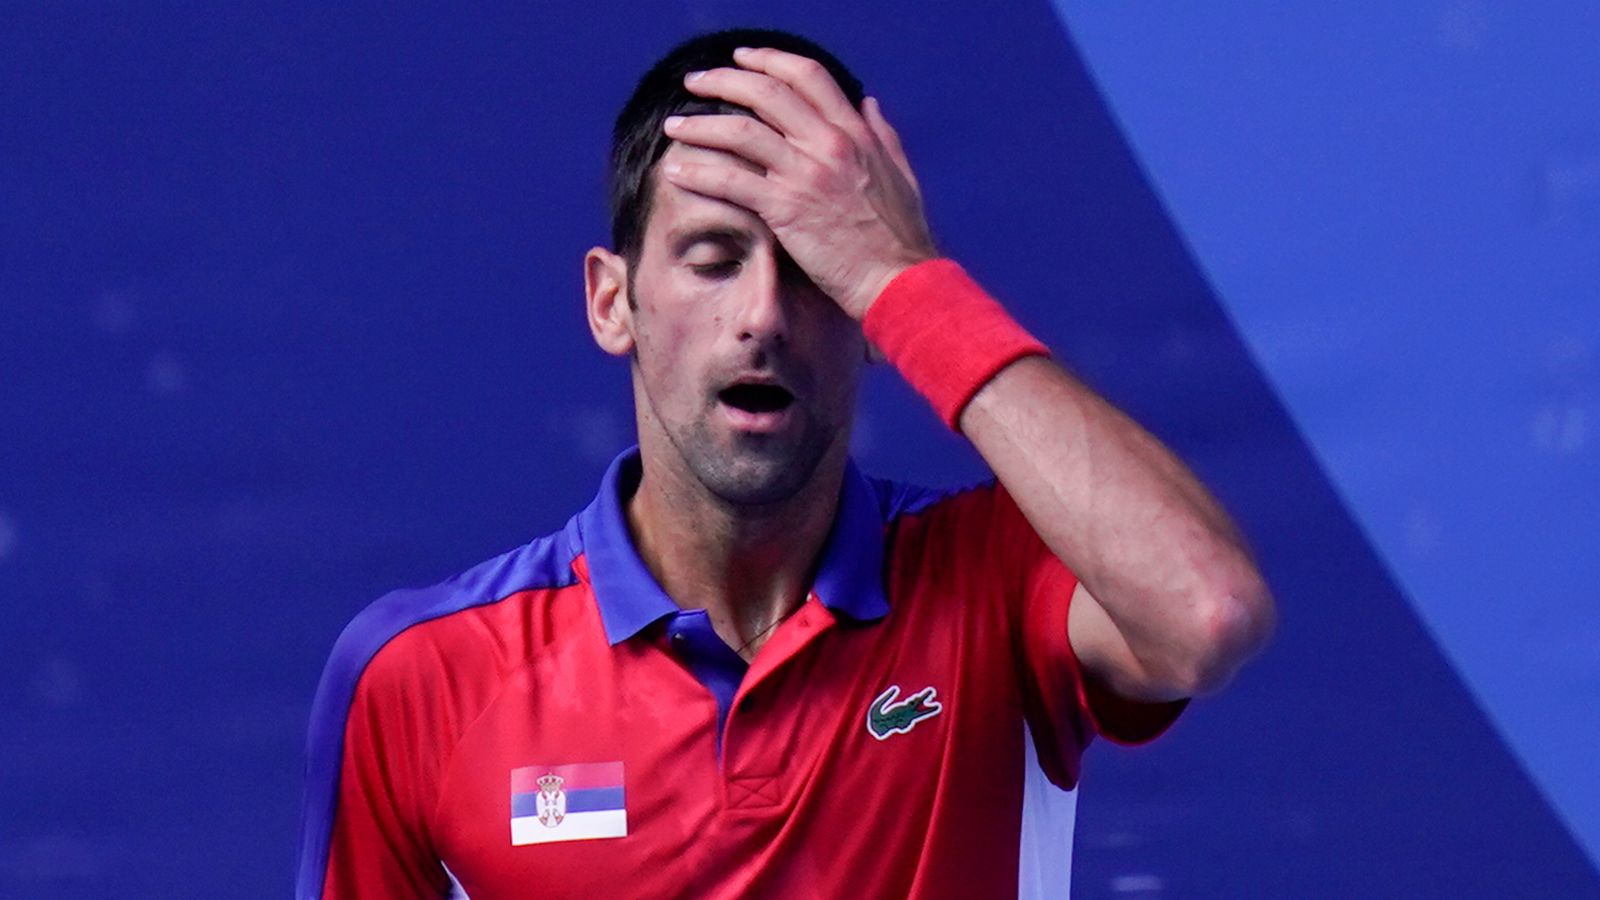 Tokyo 2020 Olympics: Novak Djokovic defeated in bronze medal match and misses out on medal